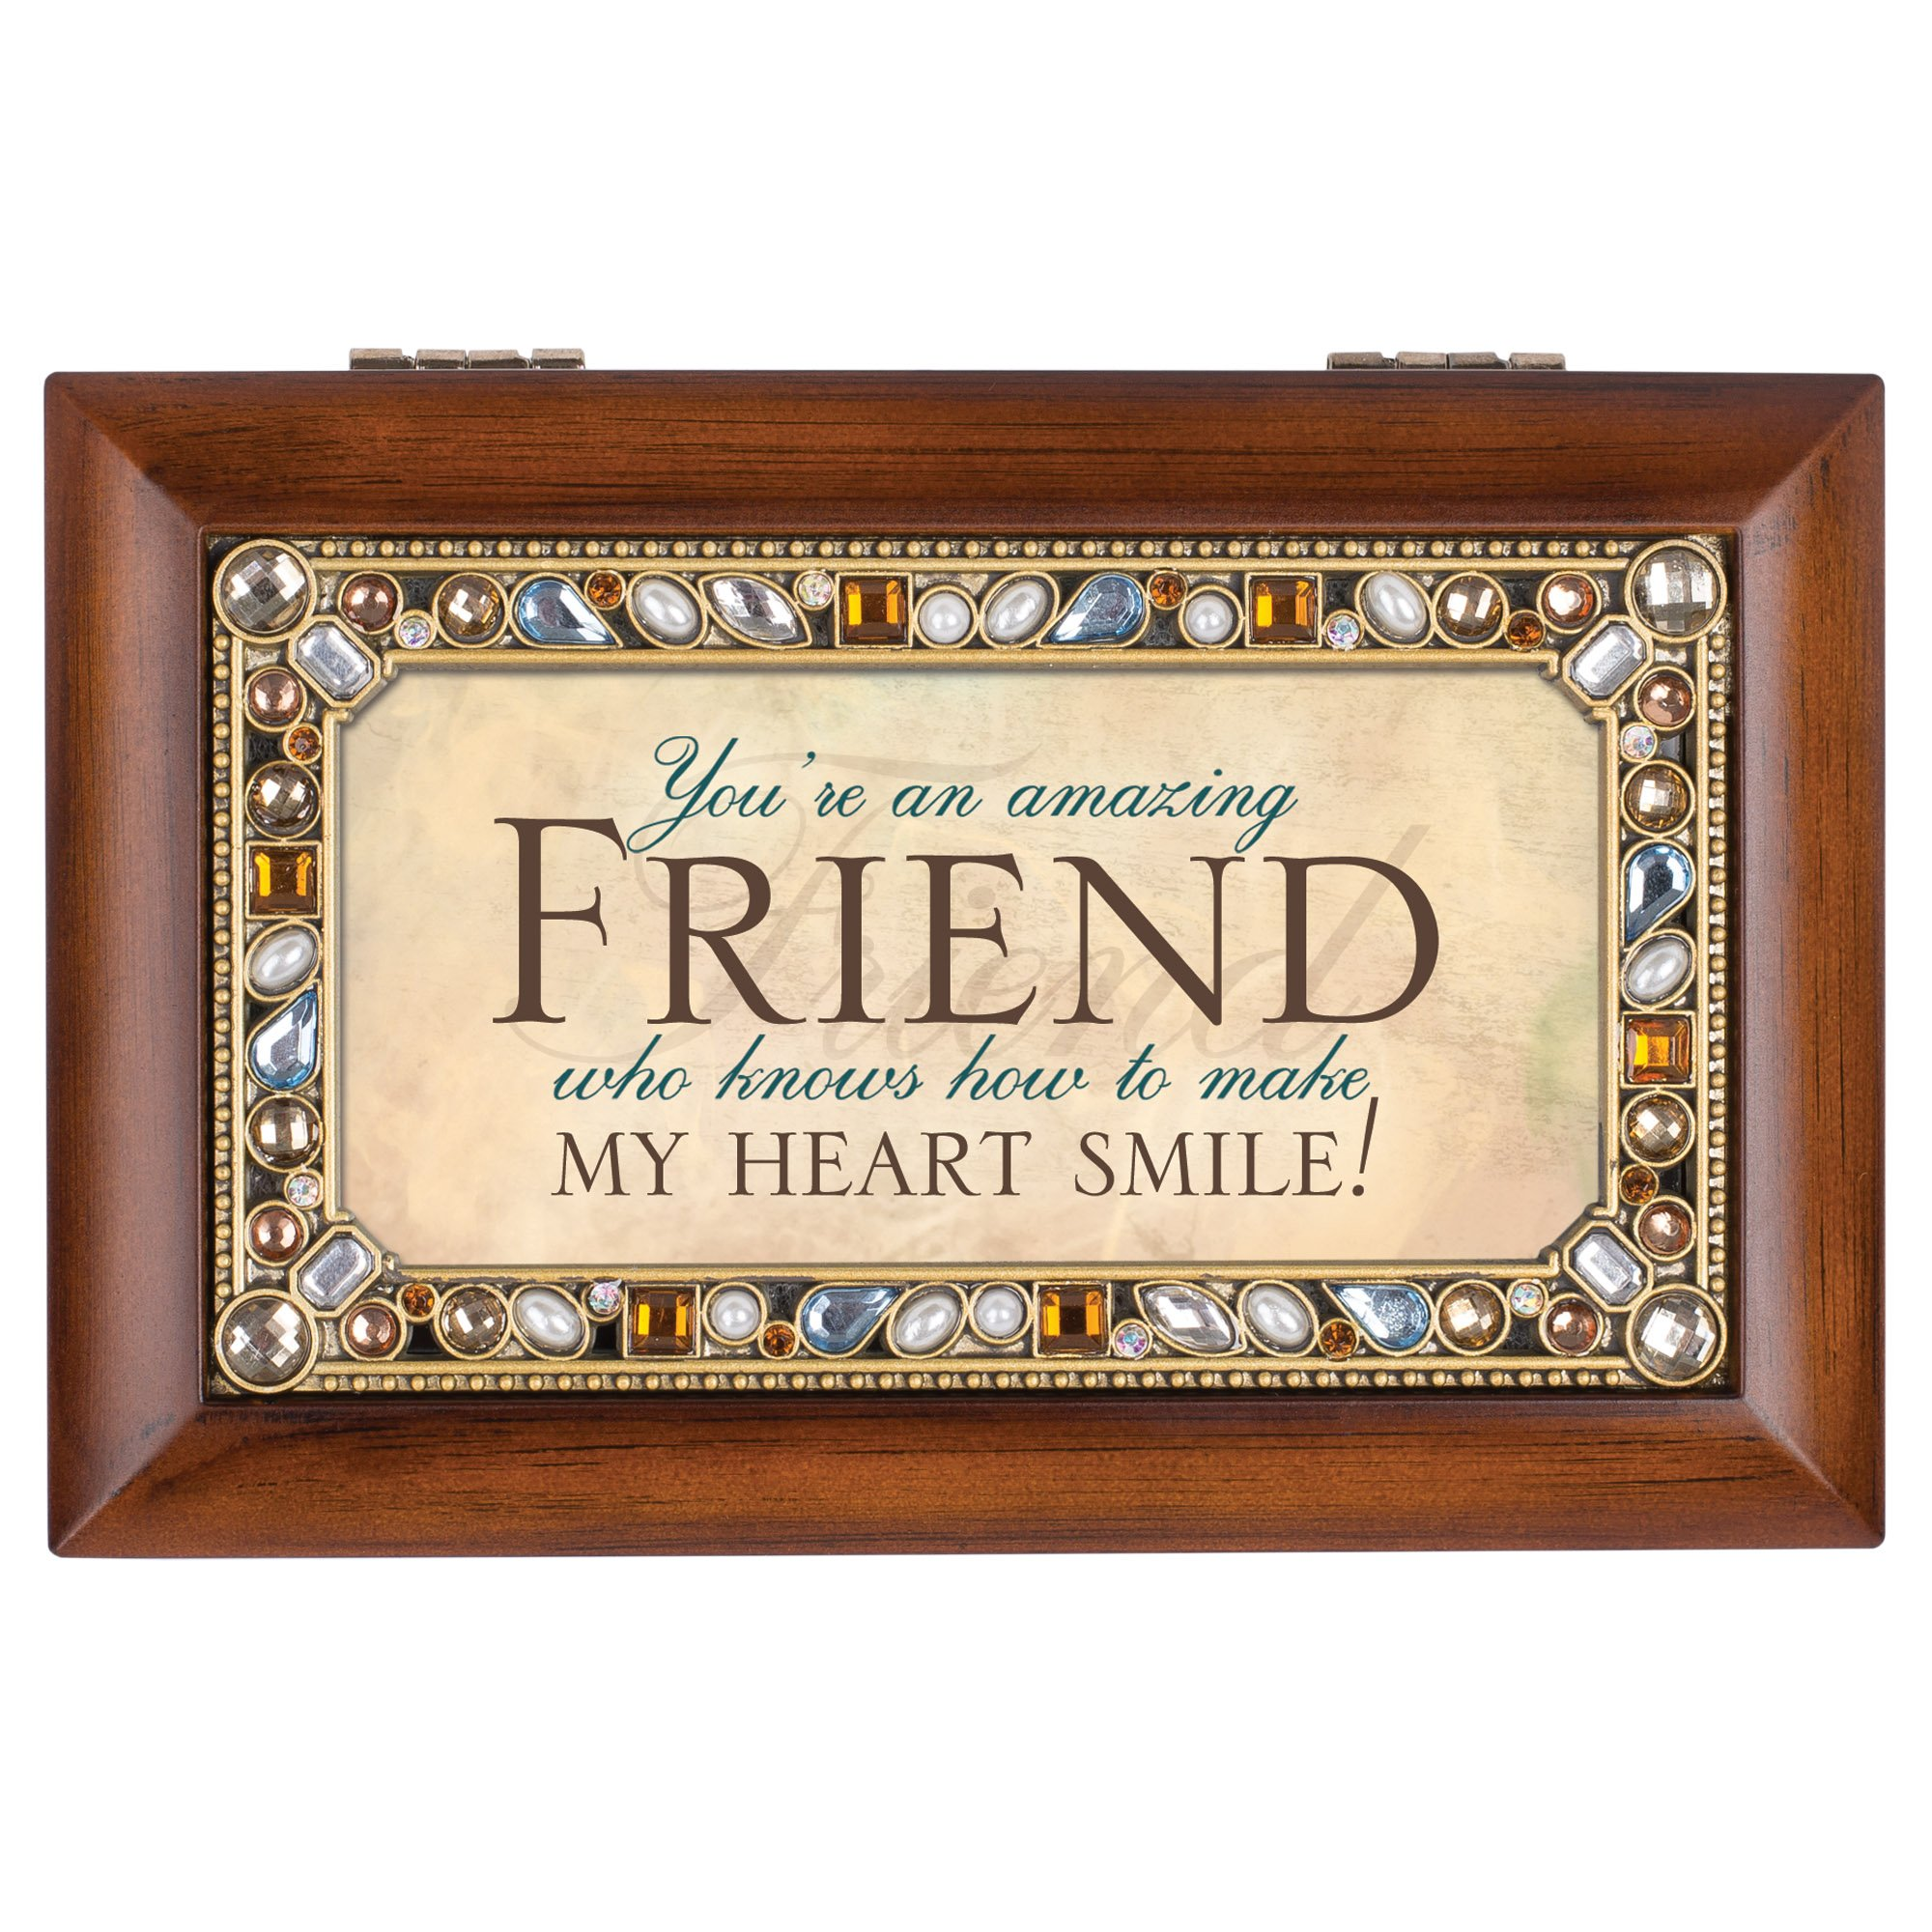 Cottage Garden Friend Jeweled Woodgrain Jewelry Music Box - Plays Tune Thats What Friends Are For by Cottage Garden (Image #2)